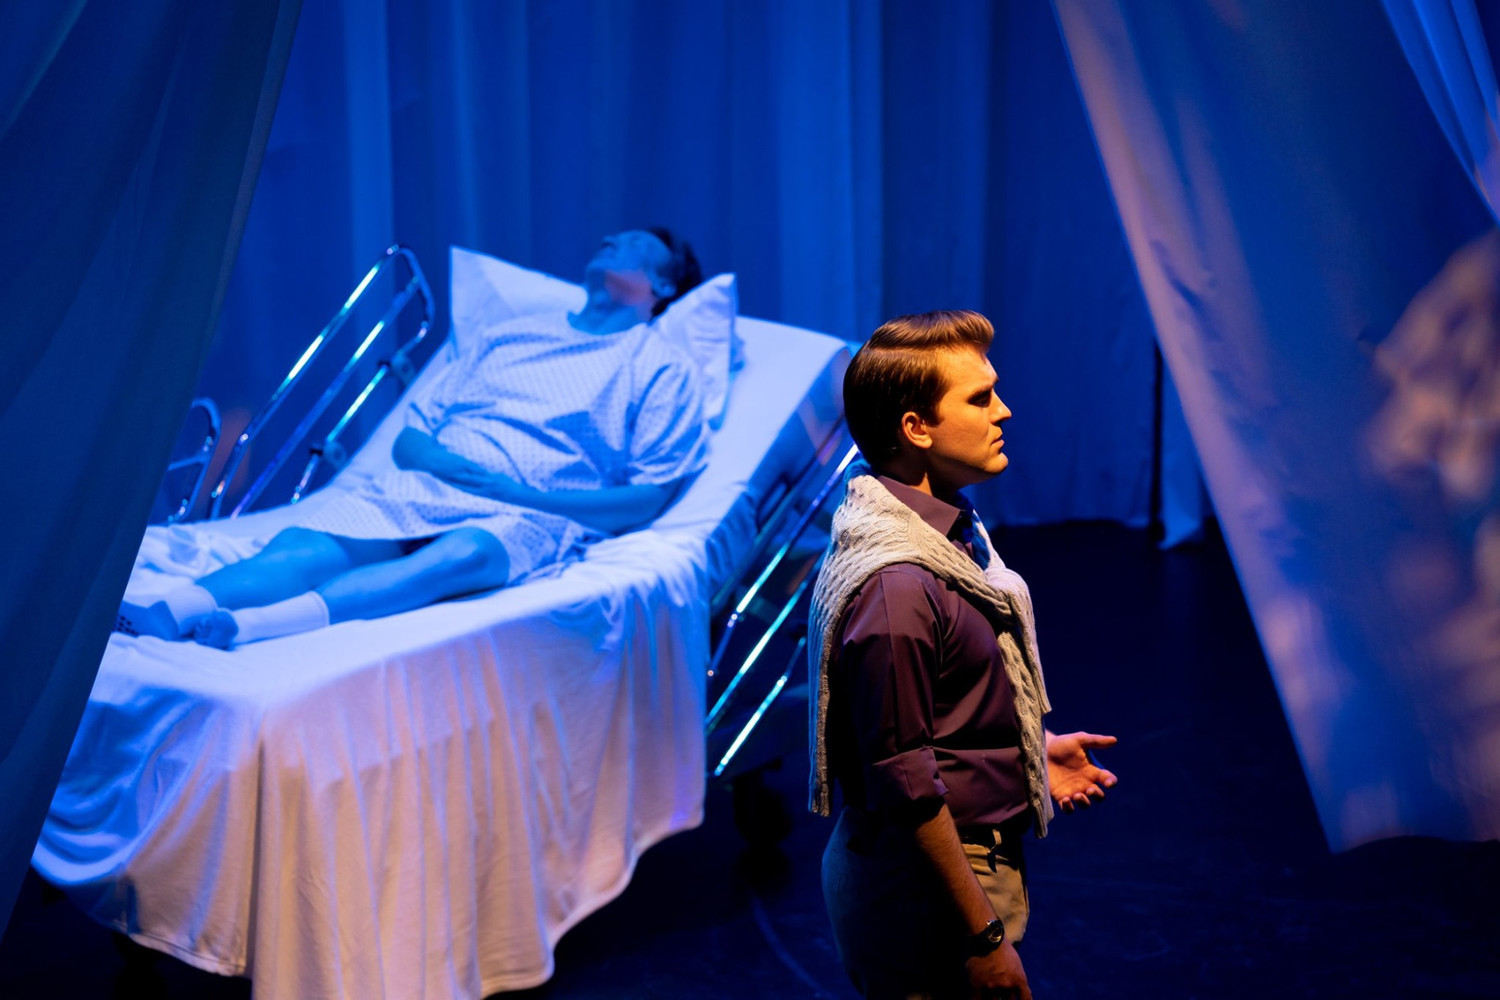 BWW Review: The Songs May Not Stick, But the Happiness Will in Iron Crow's Production of A NEW BRAIN